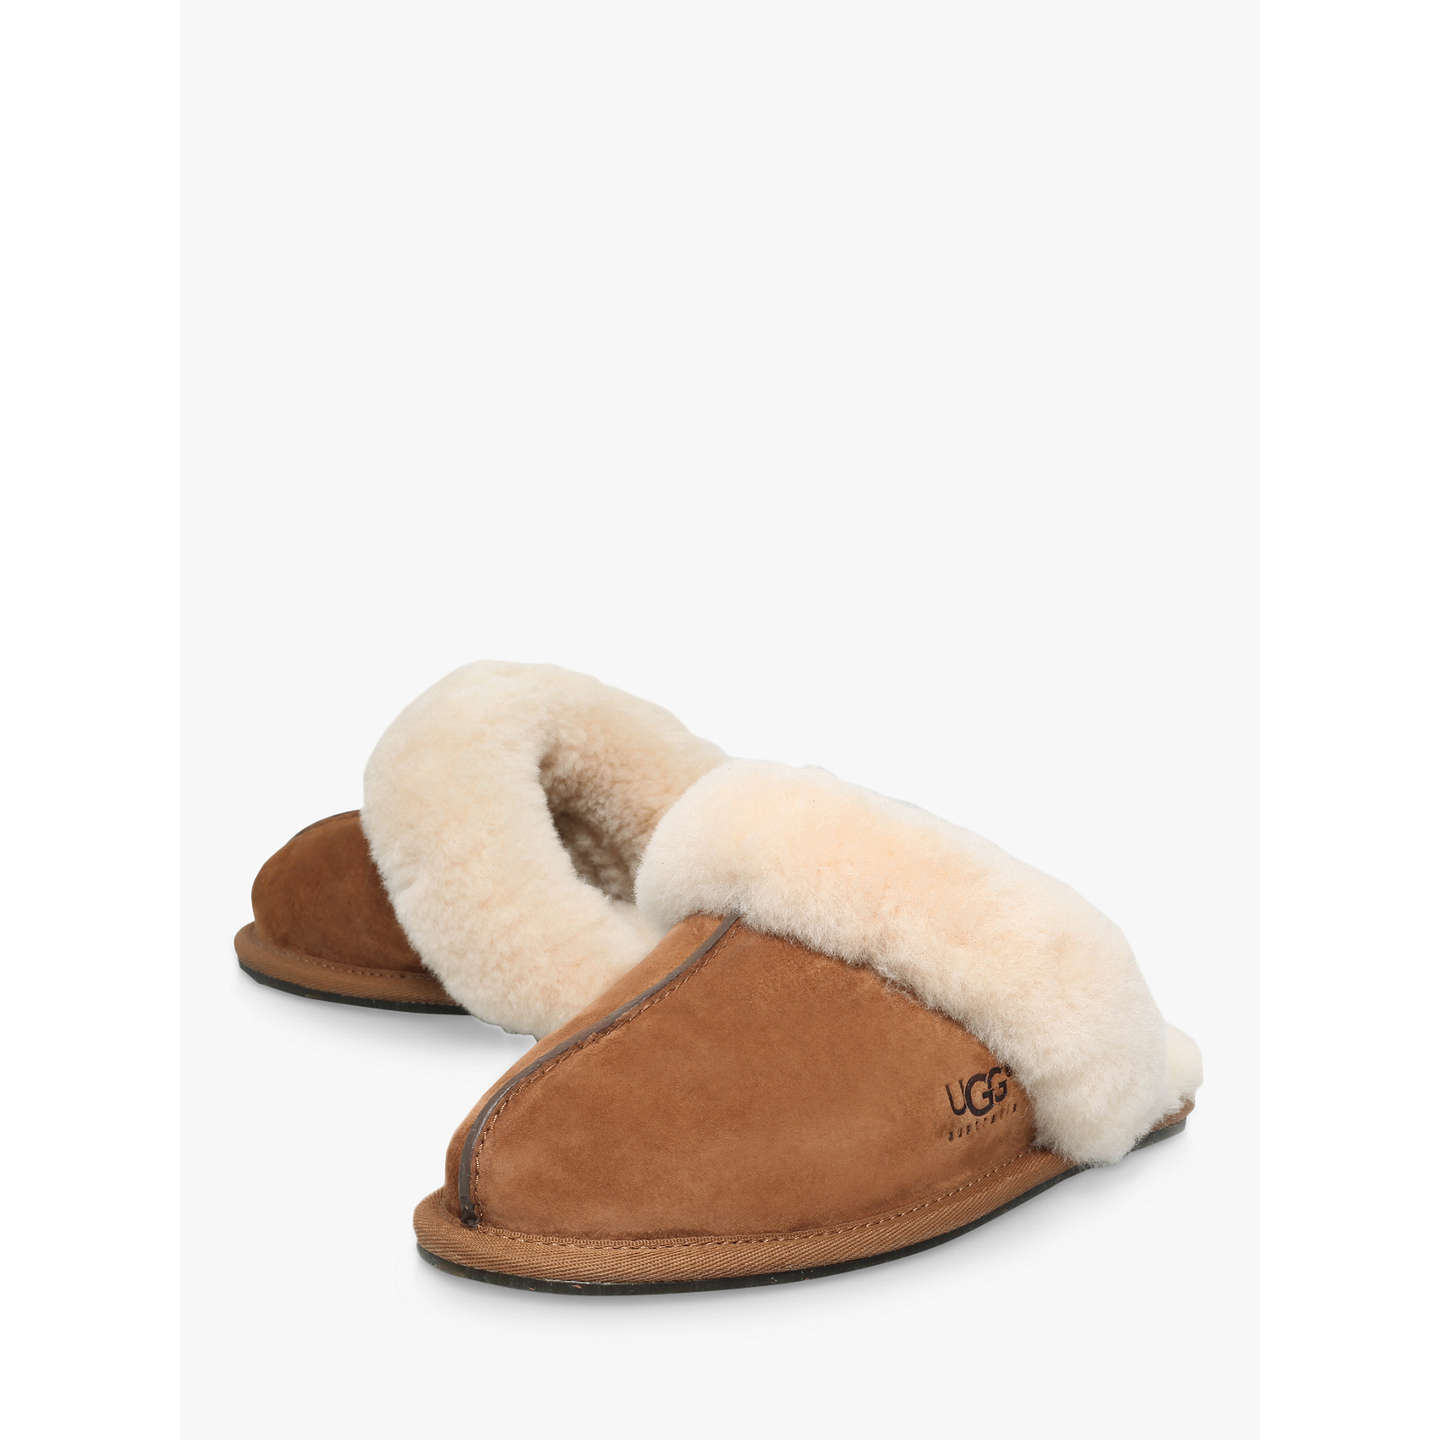 BuyUGG Scuffette II Sheepskin Slippers, Brown, 5 Online at johnlewis.com